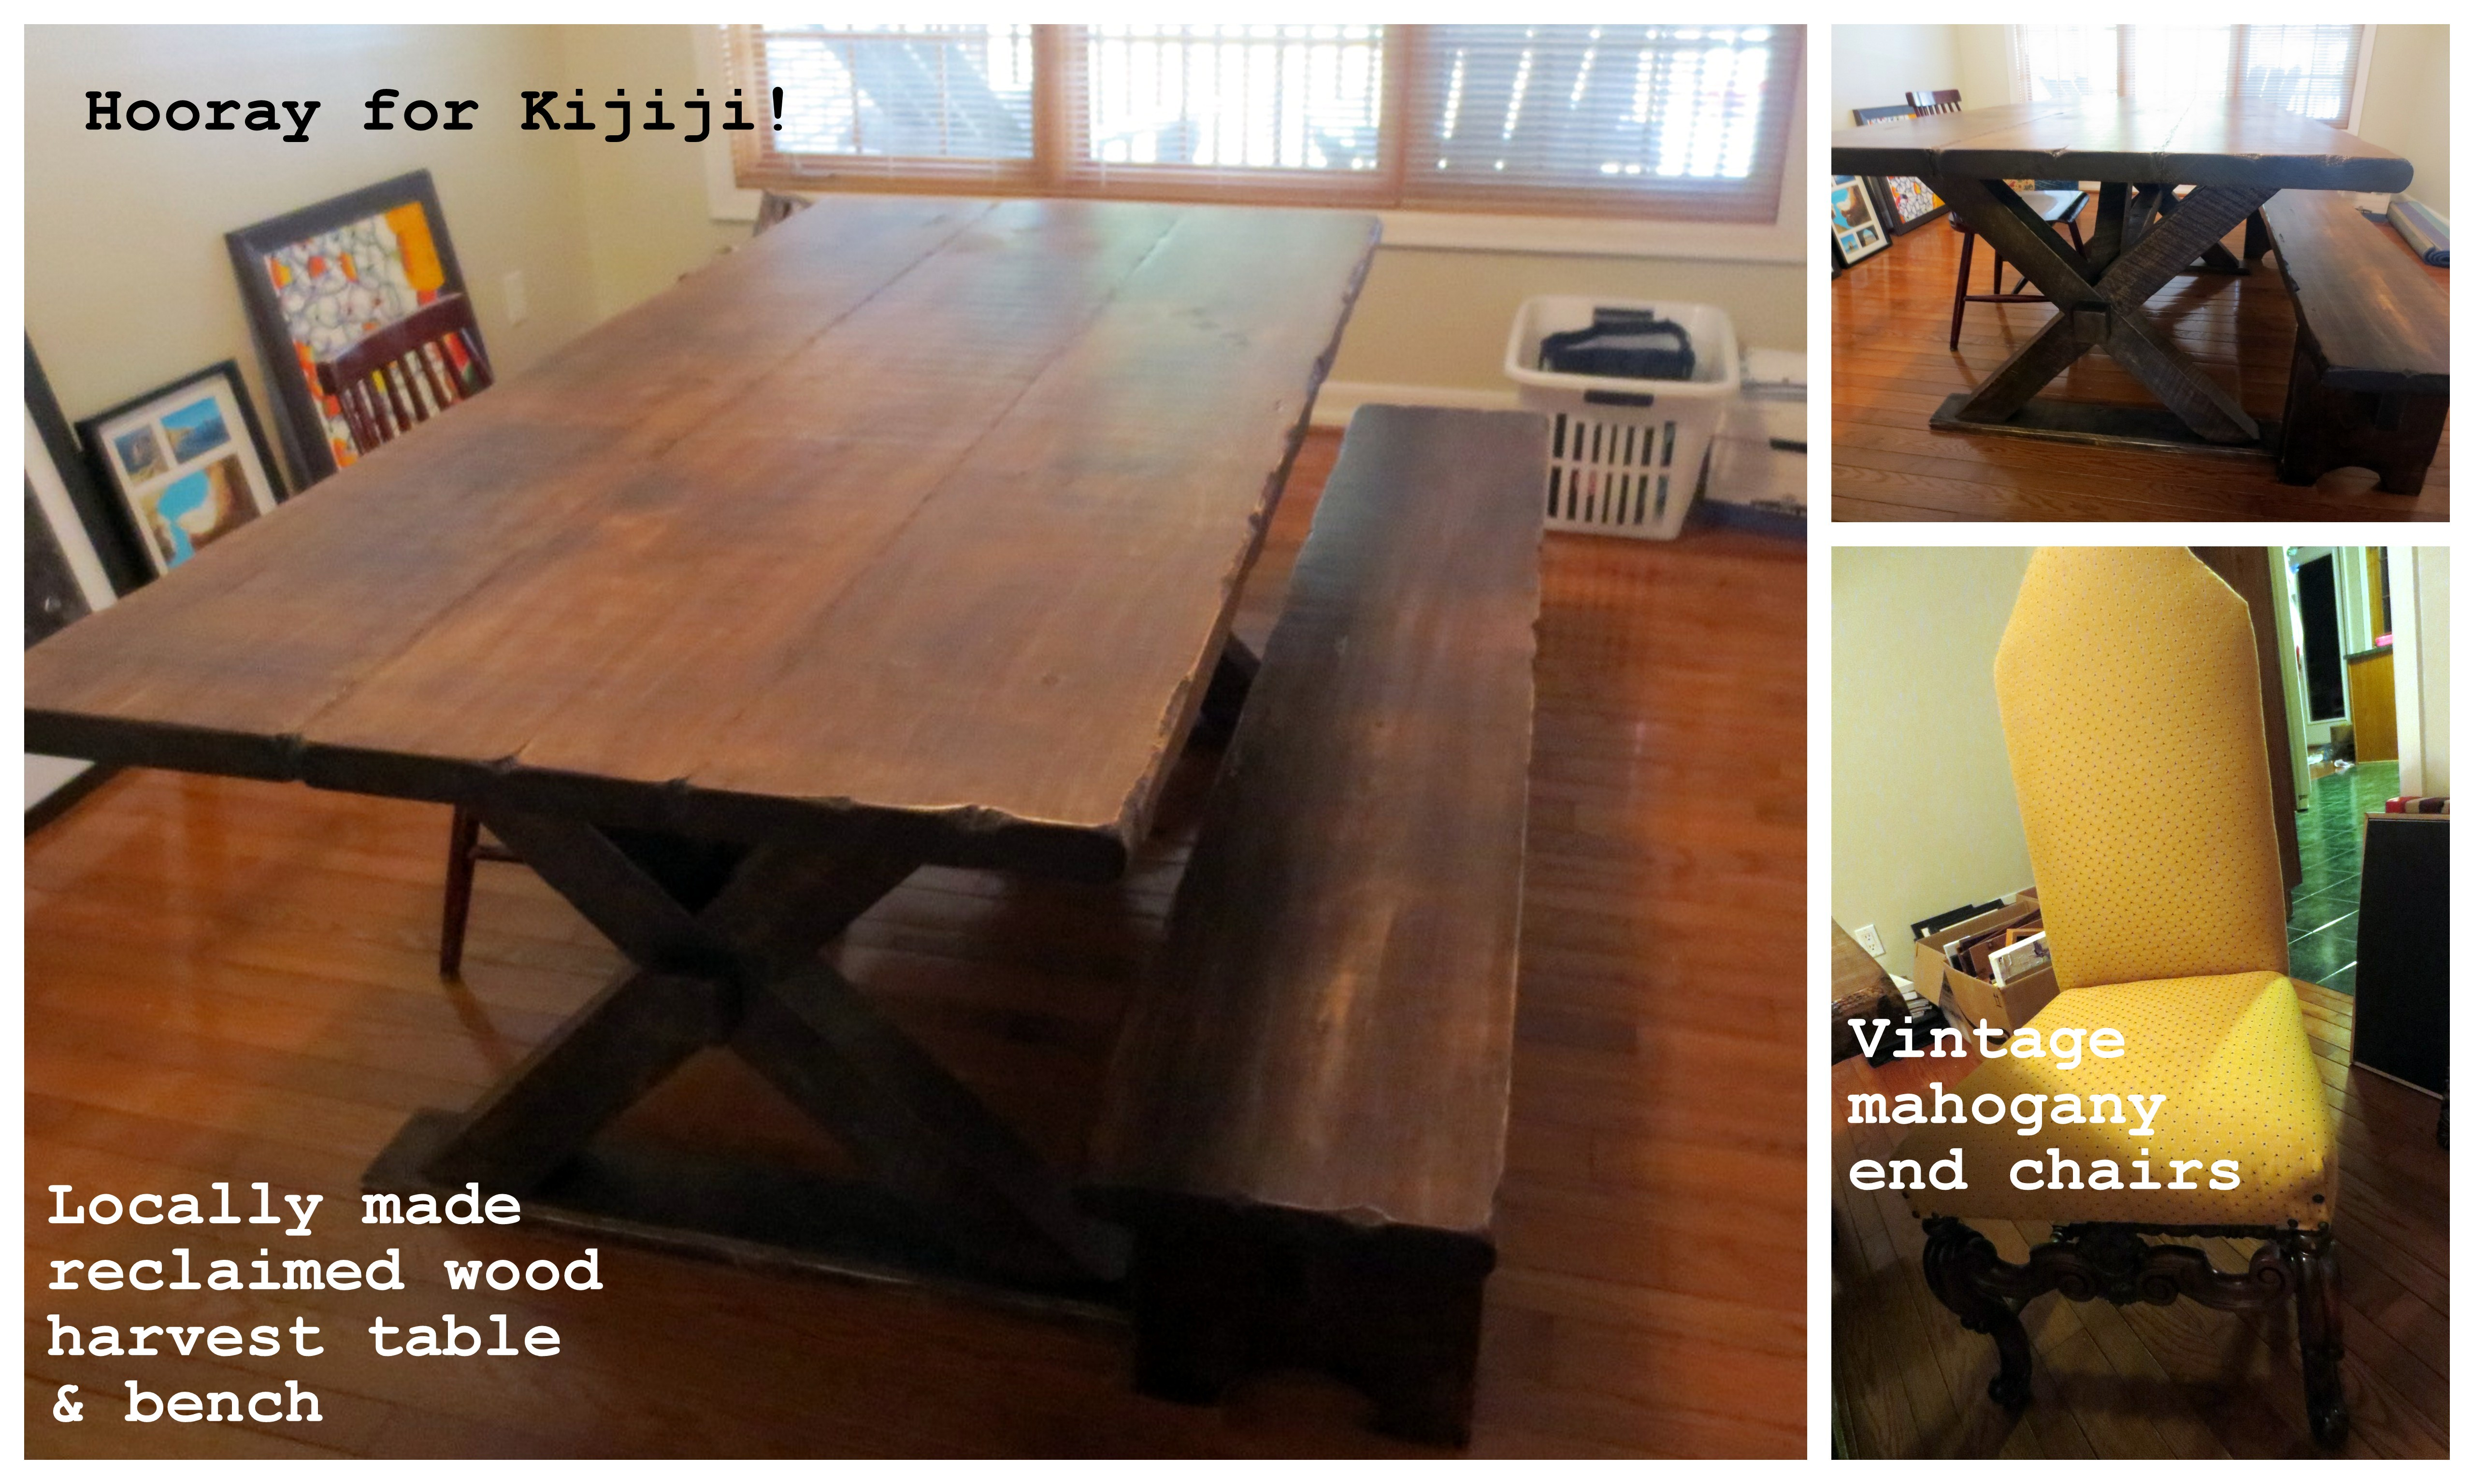 ottawa harvest table reclaimed wood local vintage barnboard mahogany chairs